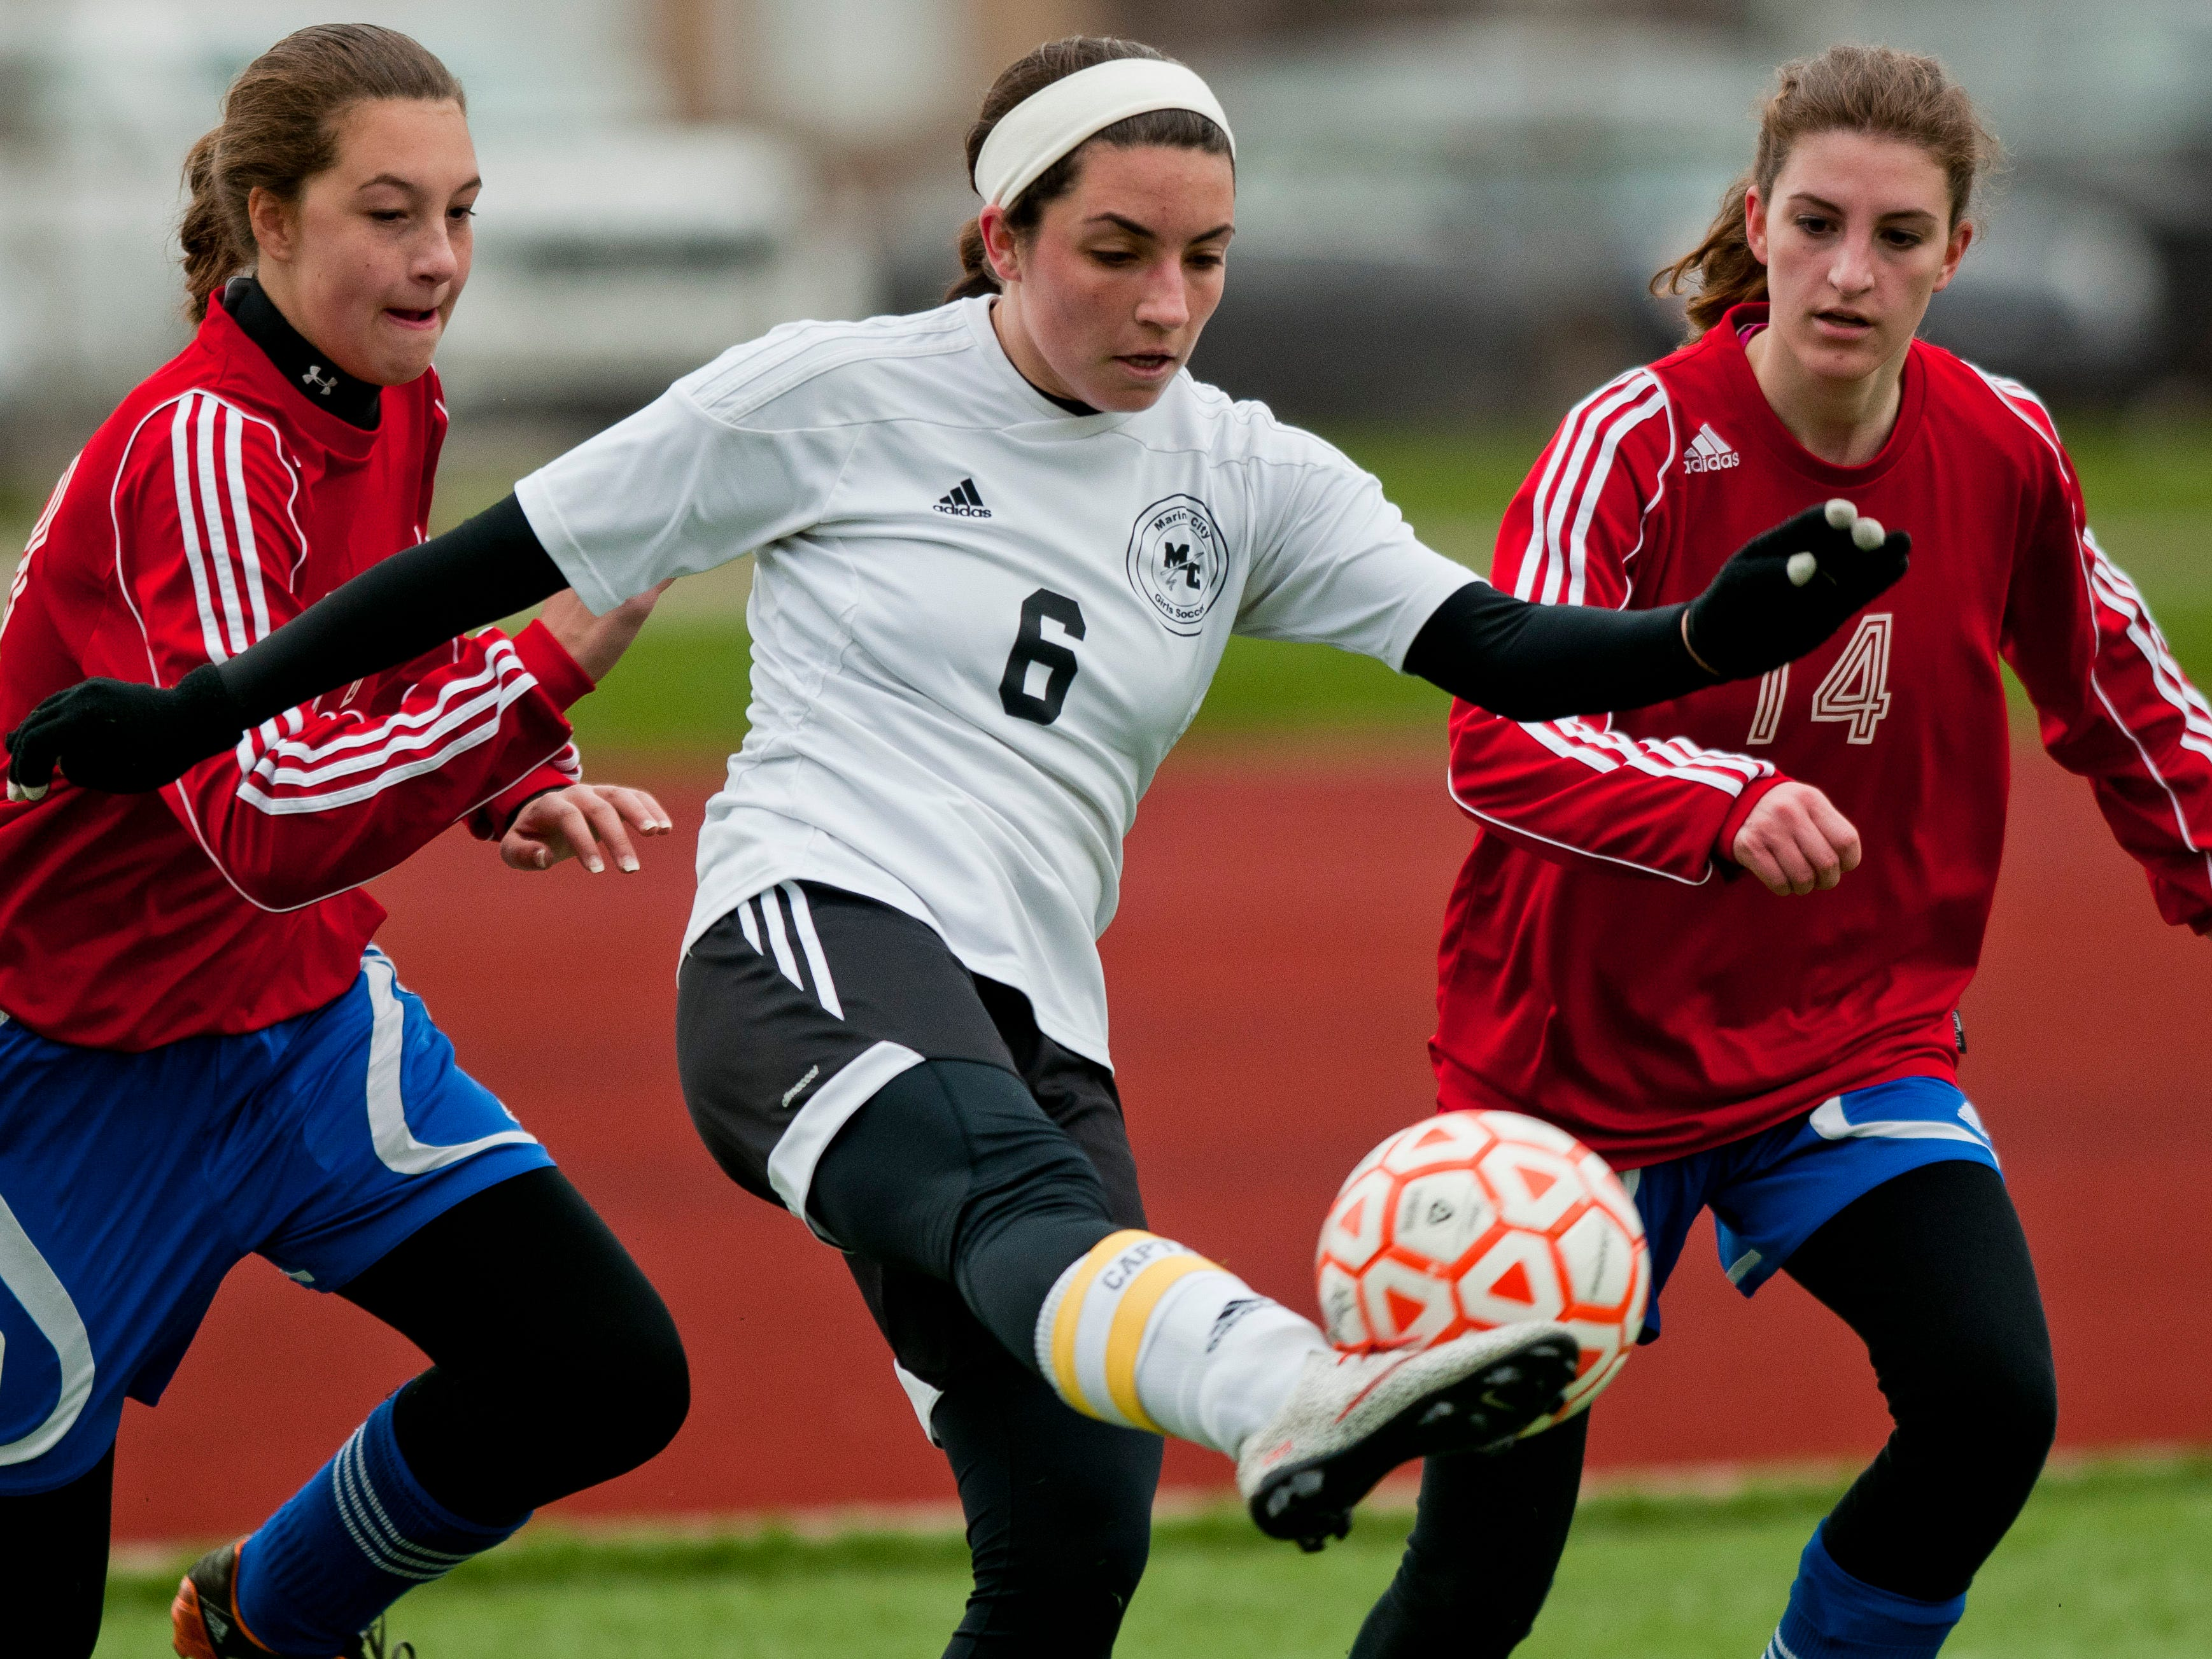 Marine City's Olivia Viney attempts to clear the ball away from St. Clair defenders during a soccer game Wednesday at East China Stadium.